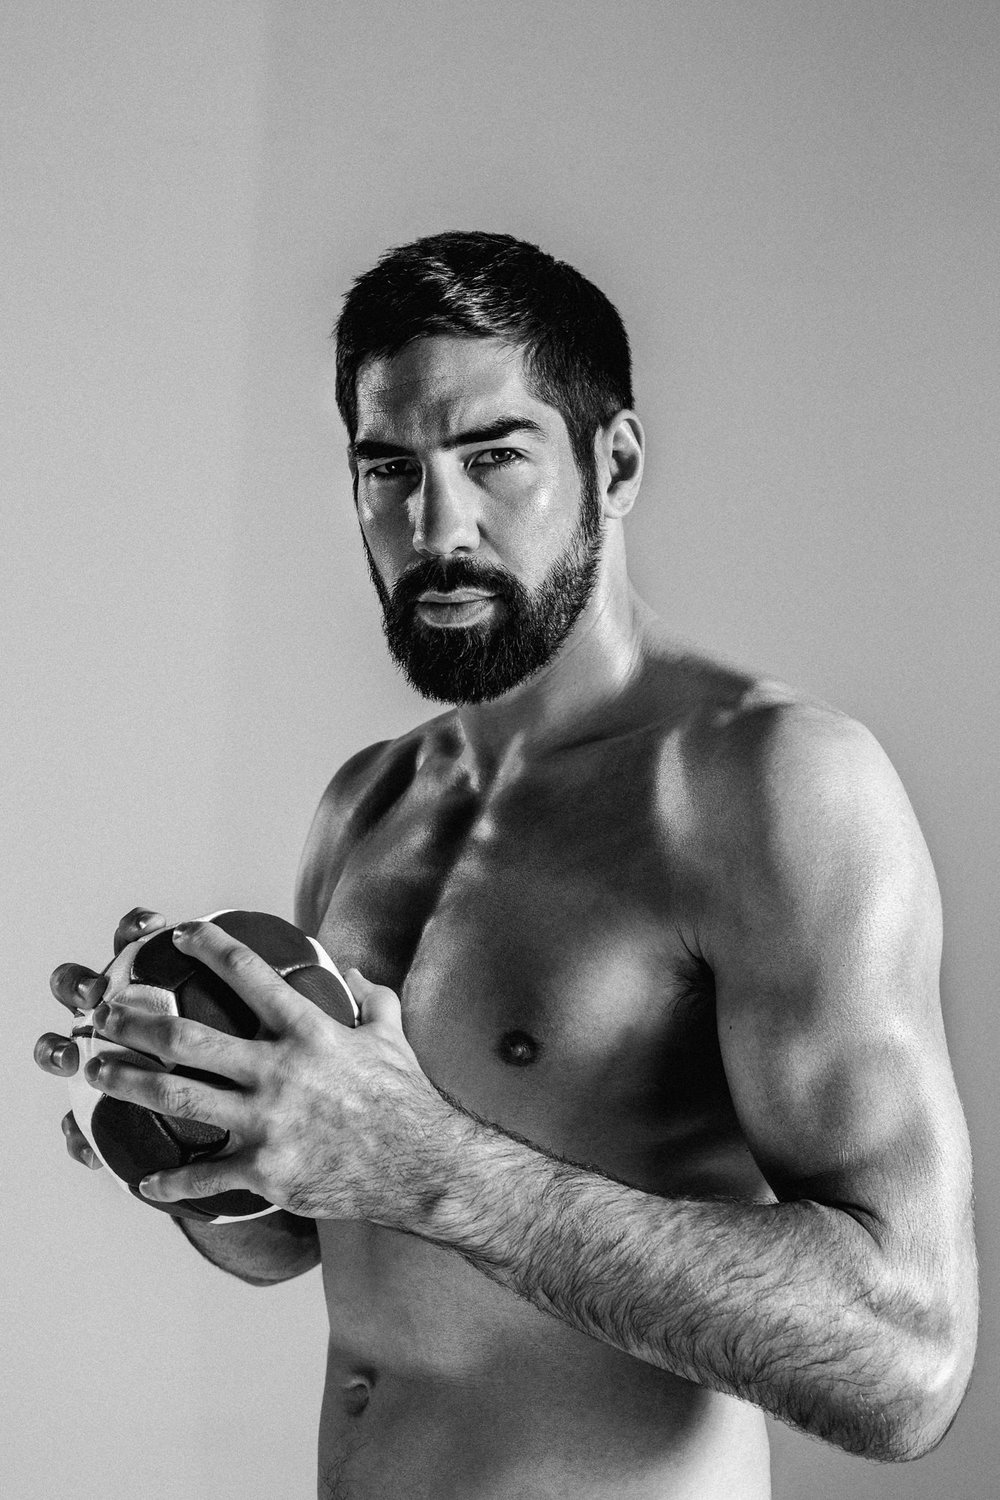 044_CS_POTRAITS_NIKOLA KARABATIĆ FOR RBMH.jpg